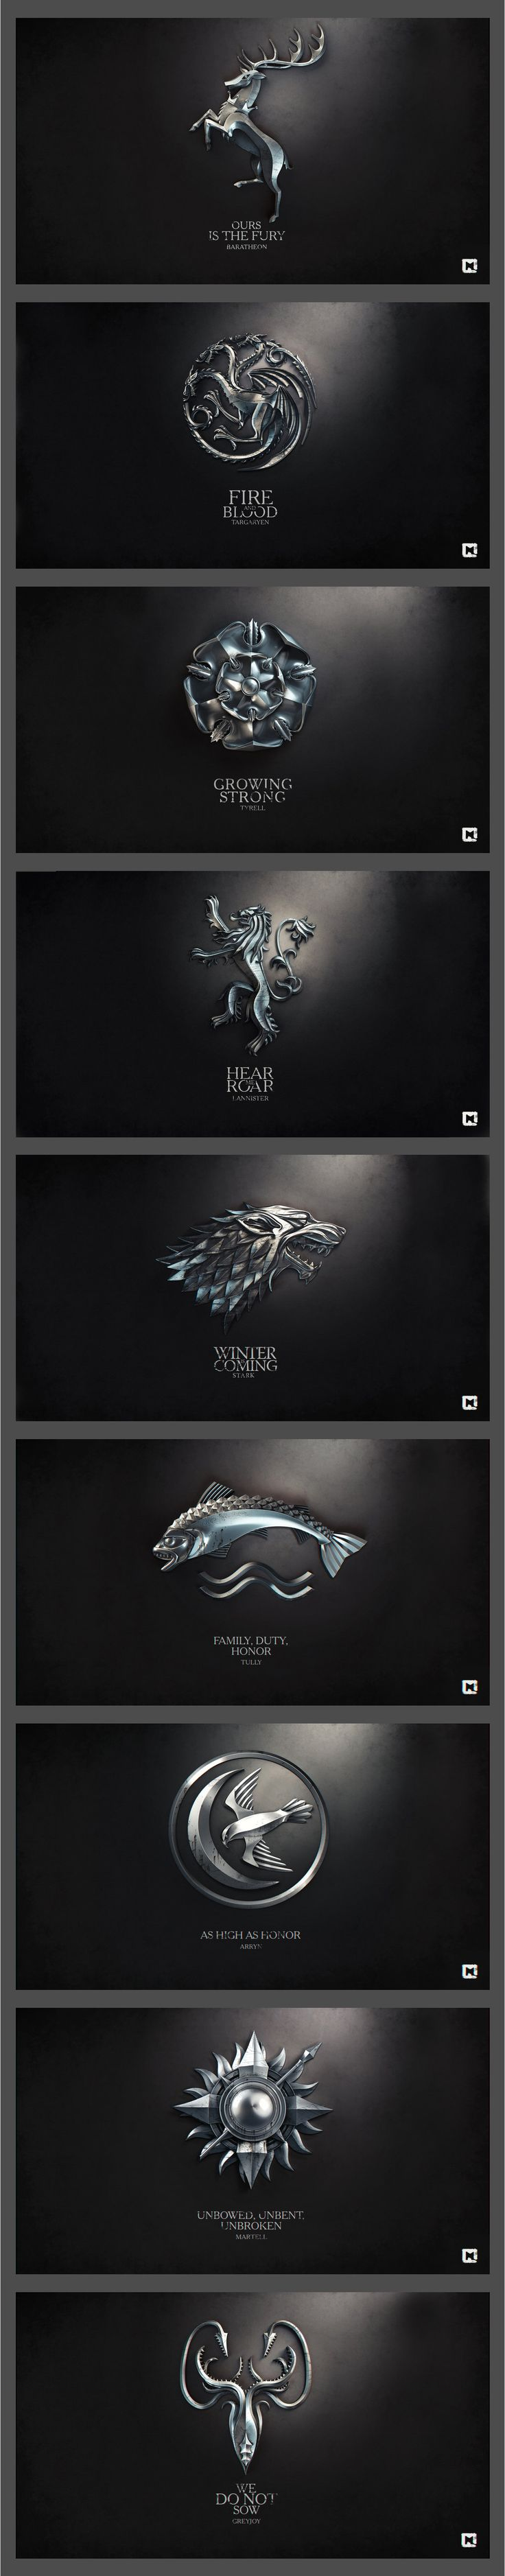 metalic series game of throne wallpapers by http://melaamory.deviantart.com/